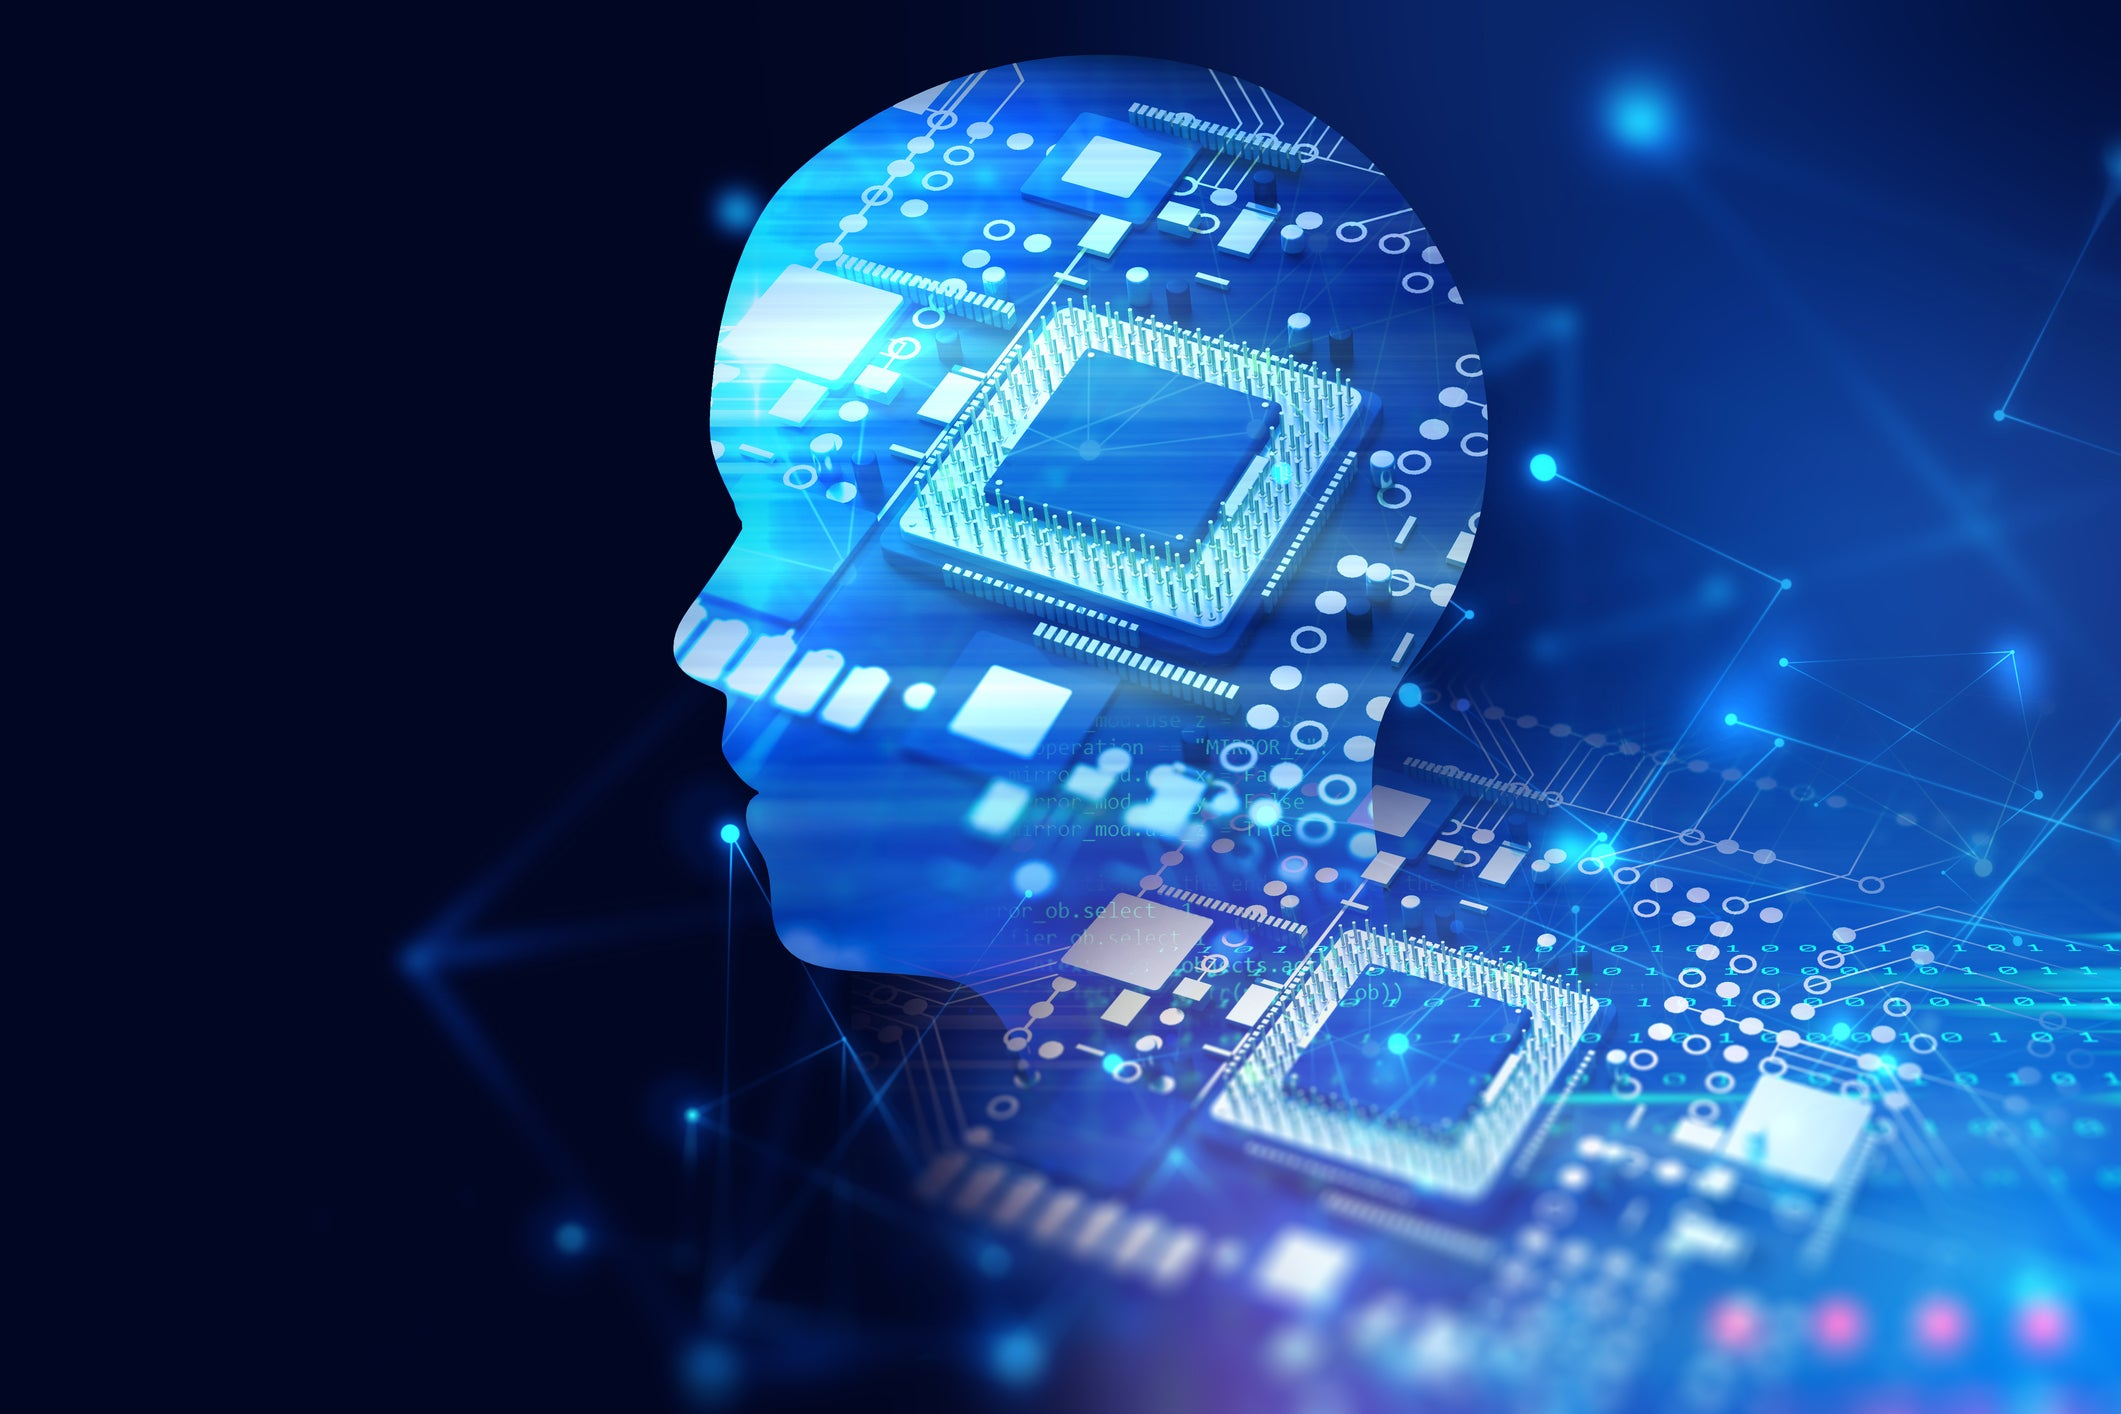 3 Best Artificial Intelligence Stocks To Buy Now The Motley Fool How Do Circuit Breakers Work In Stock Markets